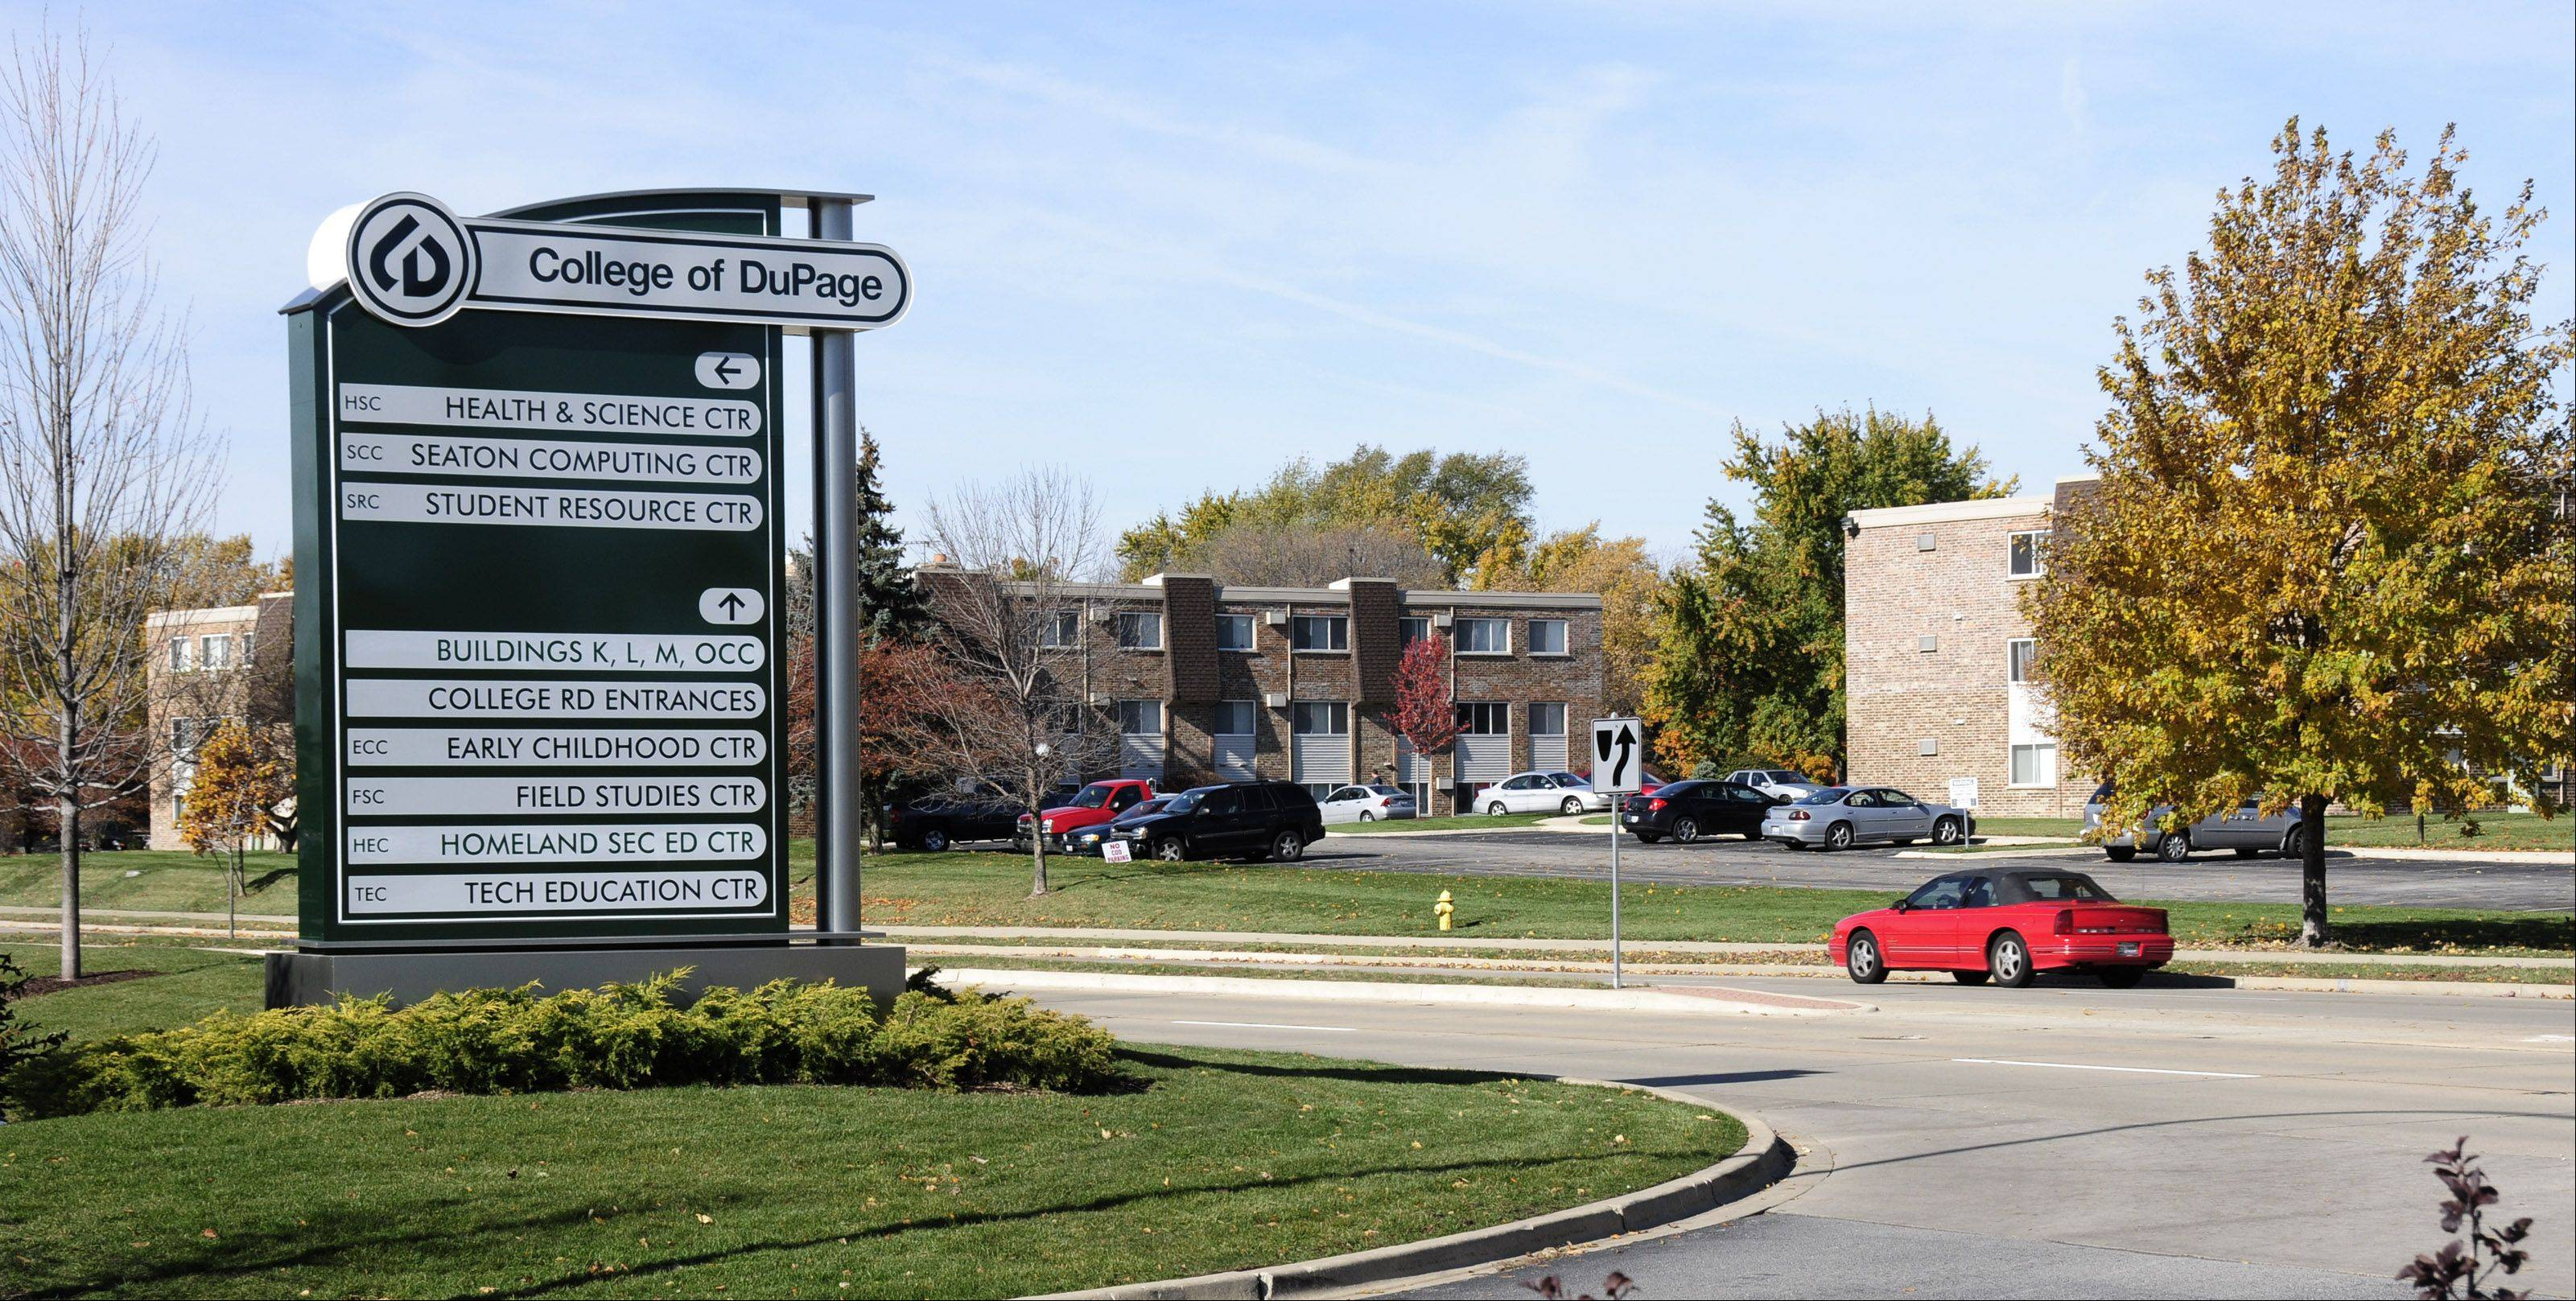 Though it will remain incorporated in Glen Ellyn, the College of DuPage's 273-acre campus will be under the regulatory control of DuPage County, under a preliminary agreement that was reached this week by the college and village. The boards of all three governments have to approve the agreement.